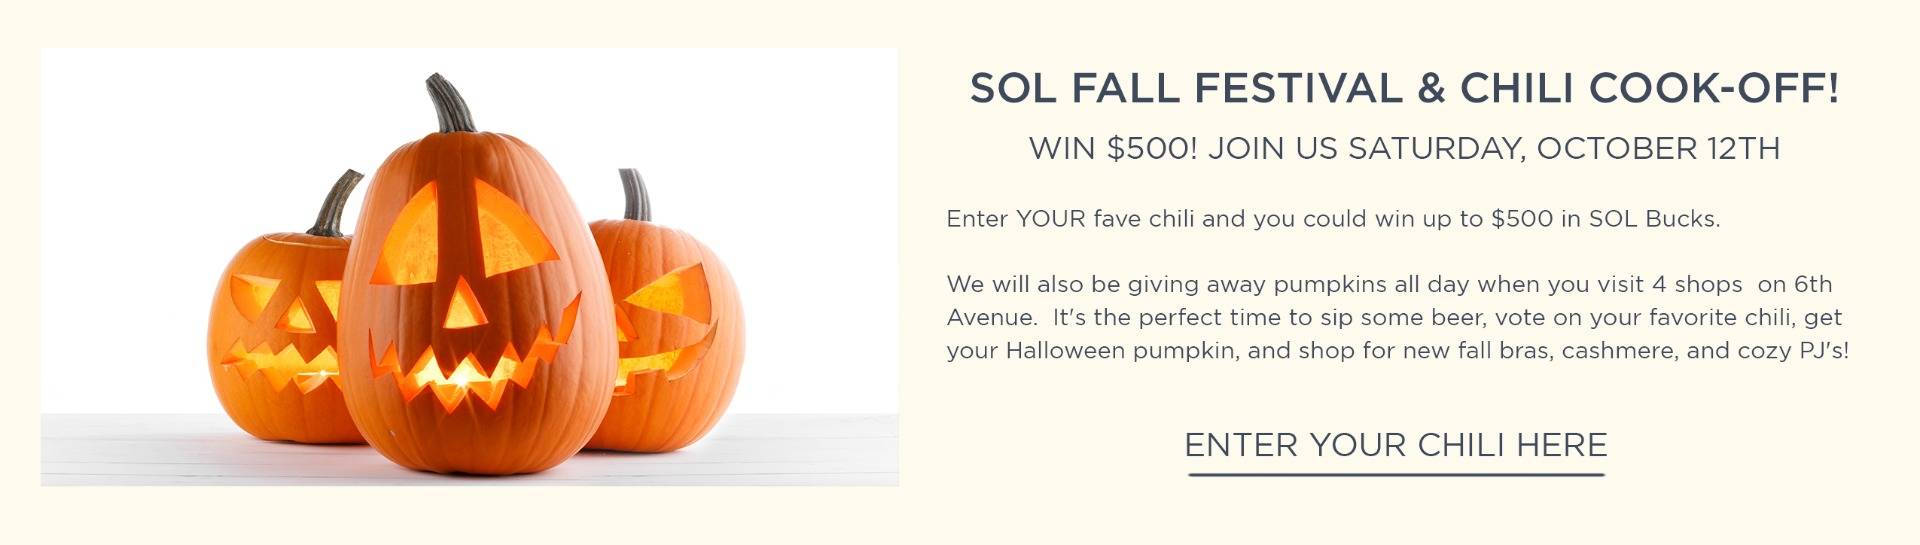 SOL Fall Celebration and Chili Cook Off